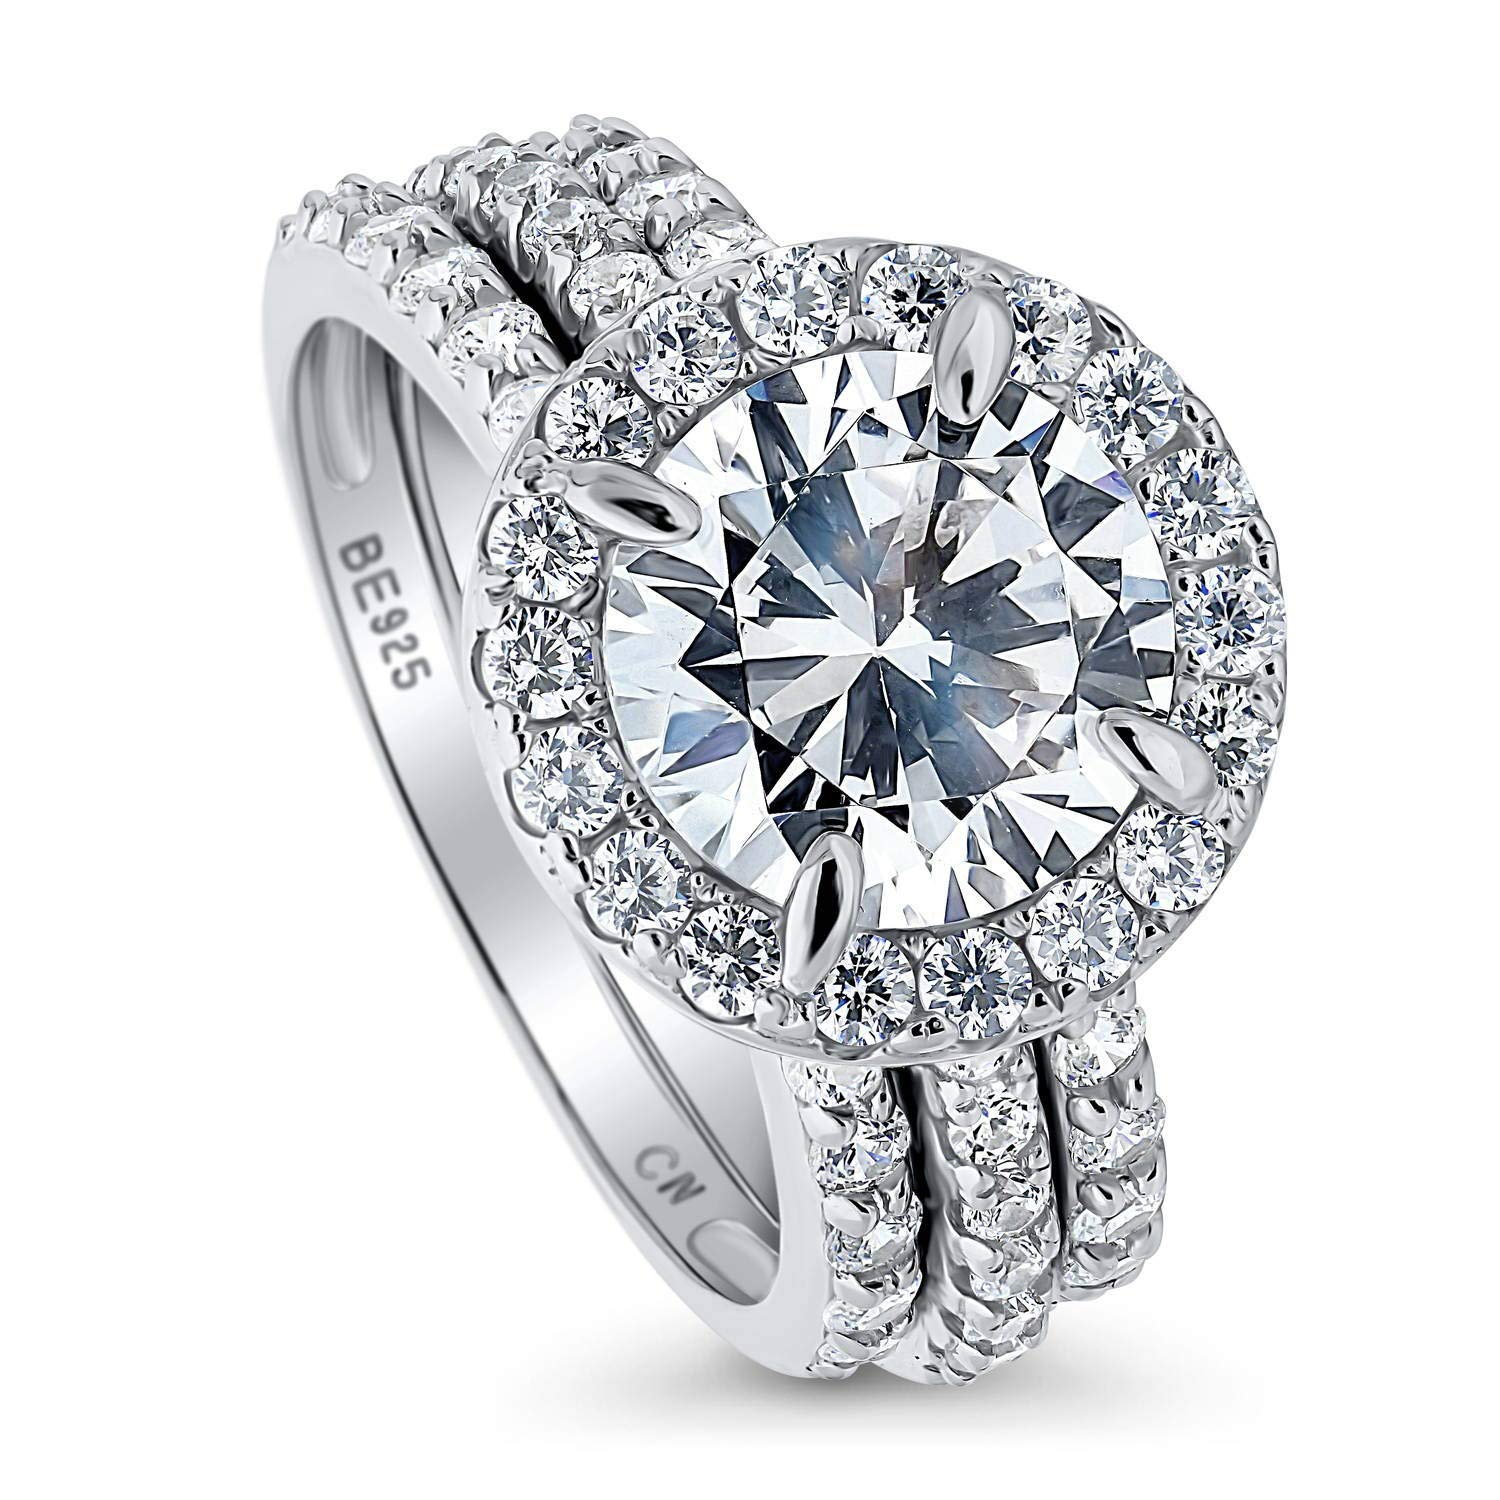 BERRICLE Rhodium Plated Sterling Silver Round Cubic Zirconia CZ Halo Engagement Wedding Ring Set 4.08 CTW Size 4.5